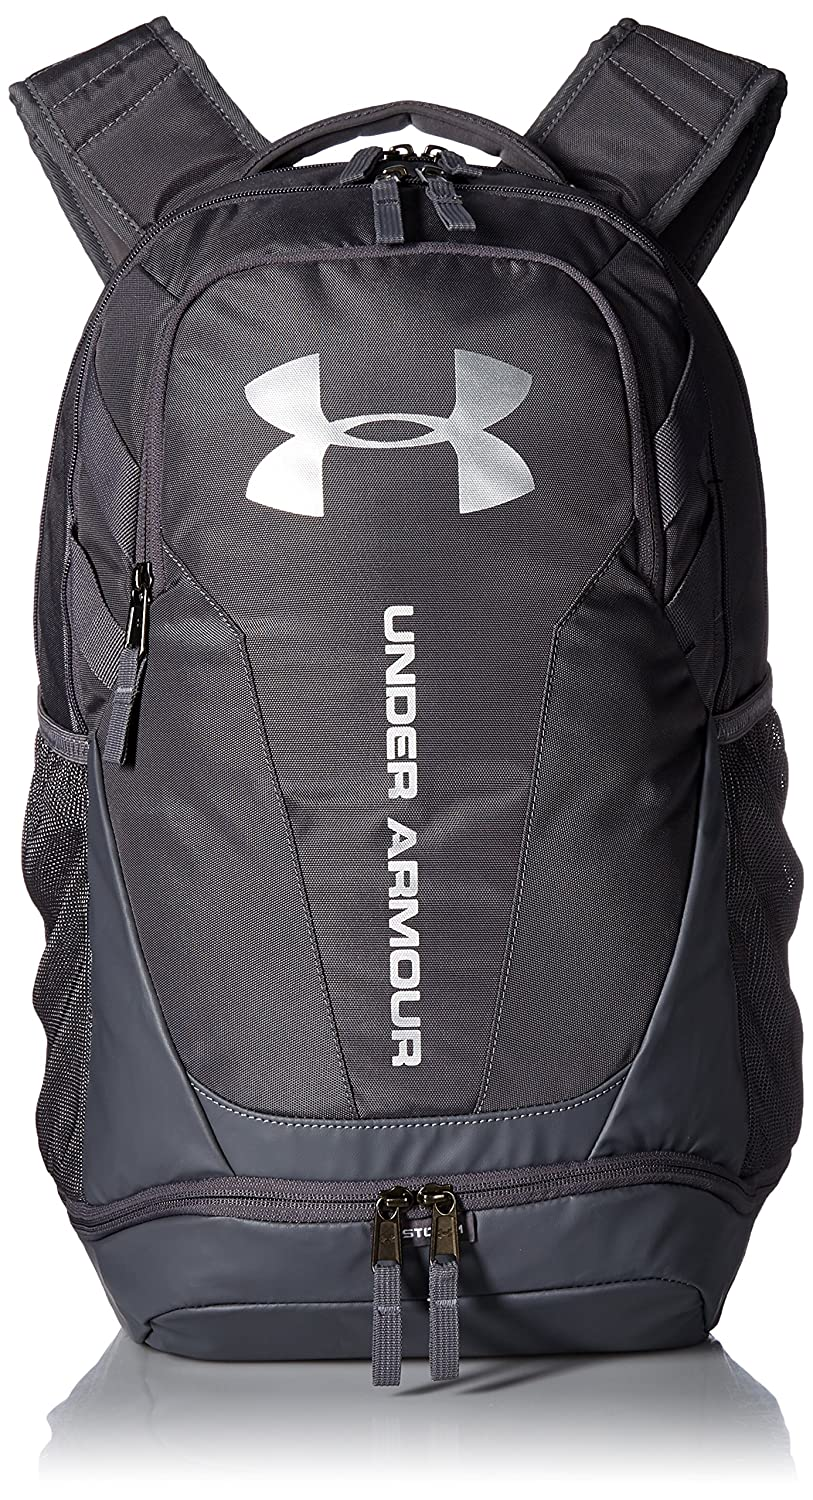 358a1a9d7c32 Under Armour Graphite Casual Backpack (1294720)  UNDER ARMOUR  Amazon.in   Bags